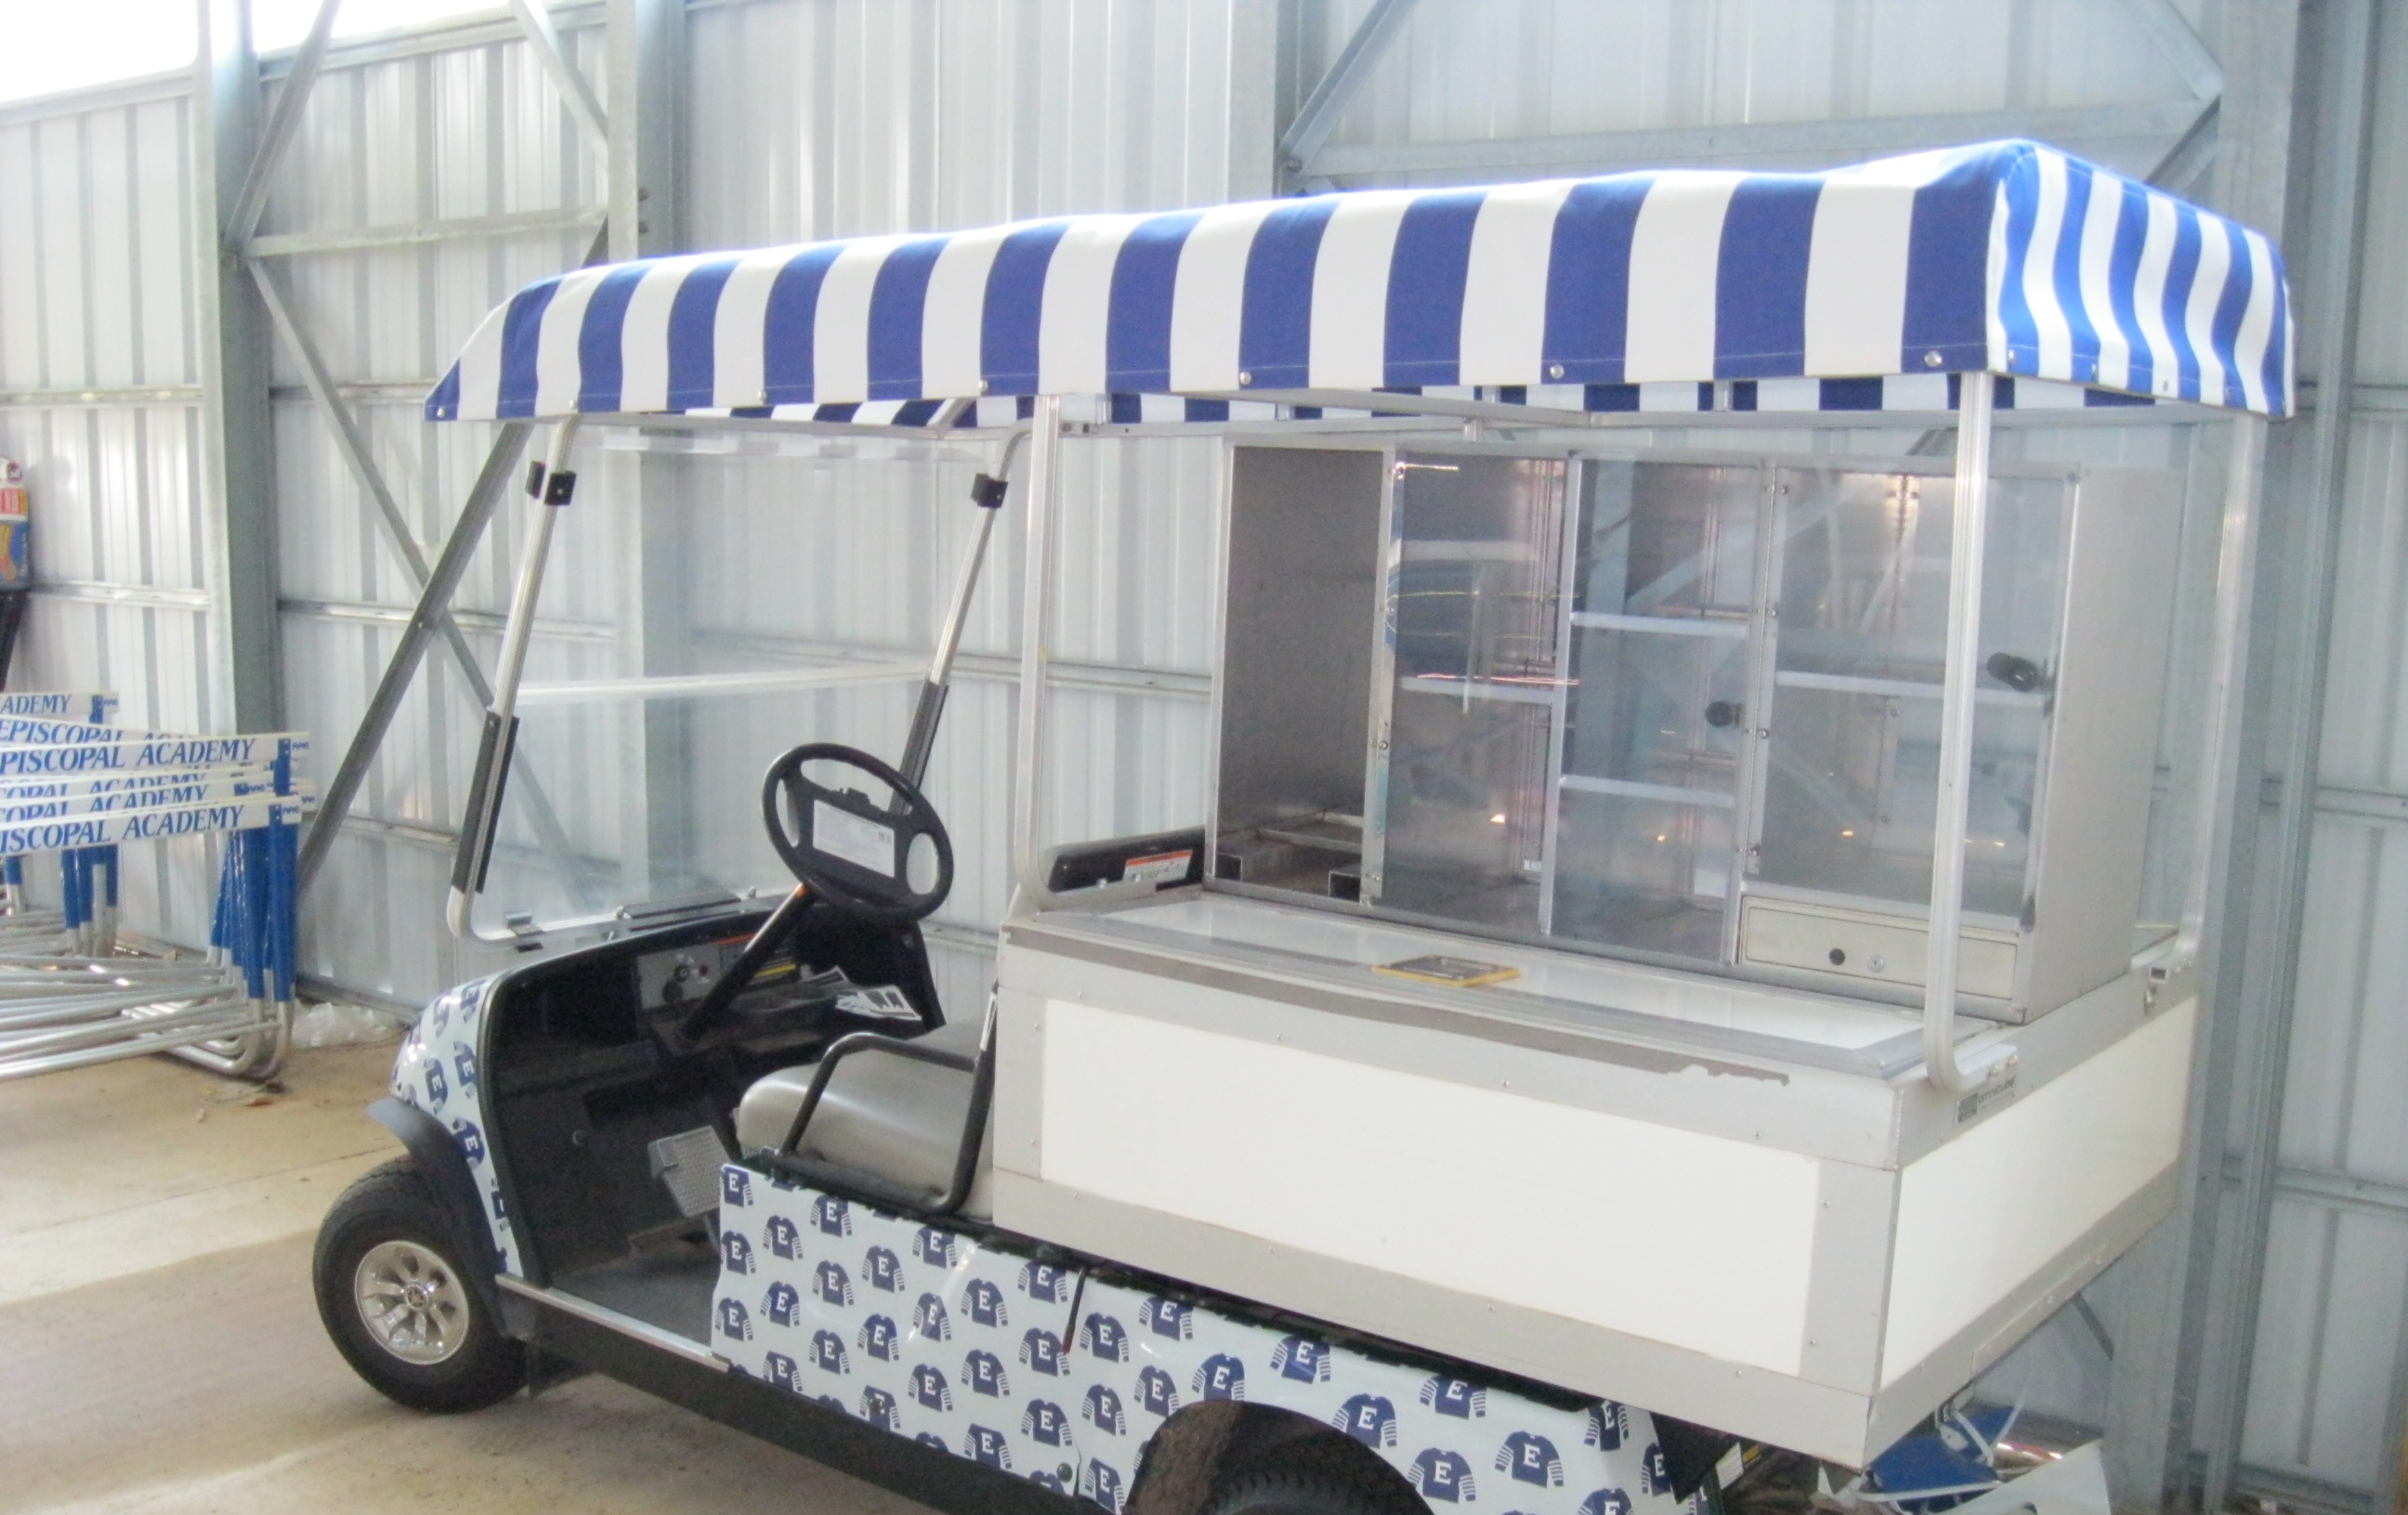 episcopal academy cart